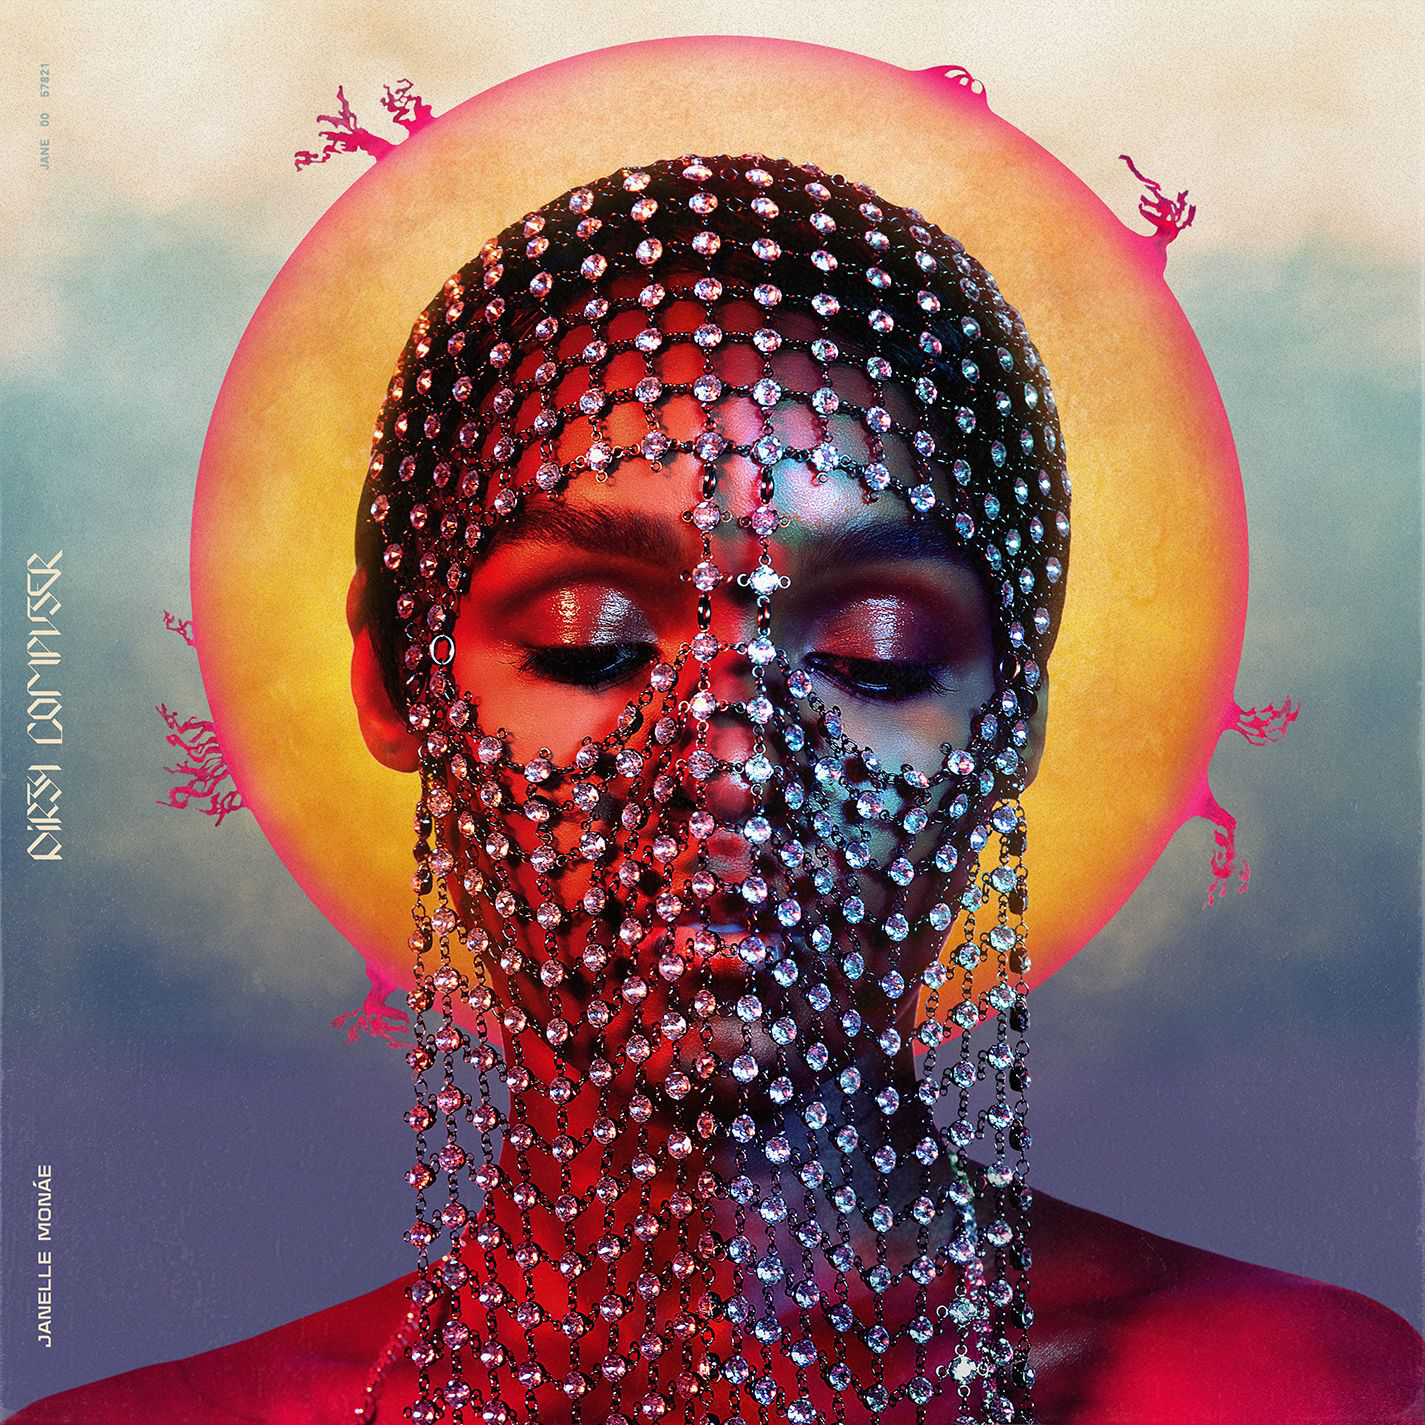 Best Albums of 2018 - The musical visionary's rebellious concept album is a masterpiece for the marginalized. Over the funkiest of beats, she celebrates gender, race, sexuality and self-love — and does it with ease.